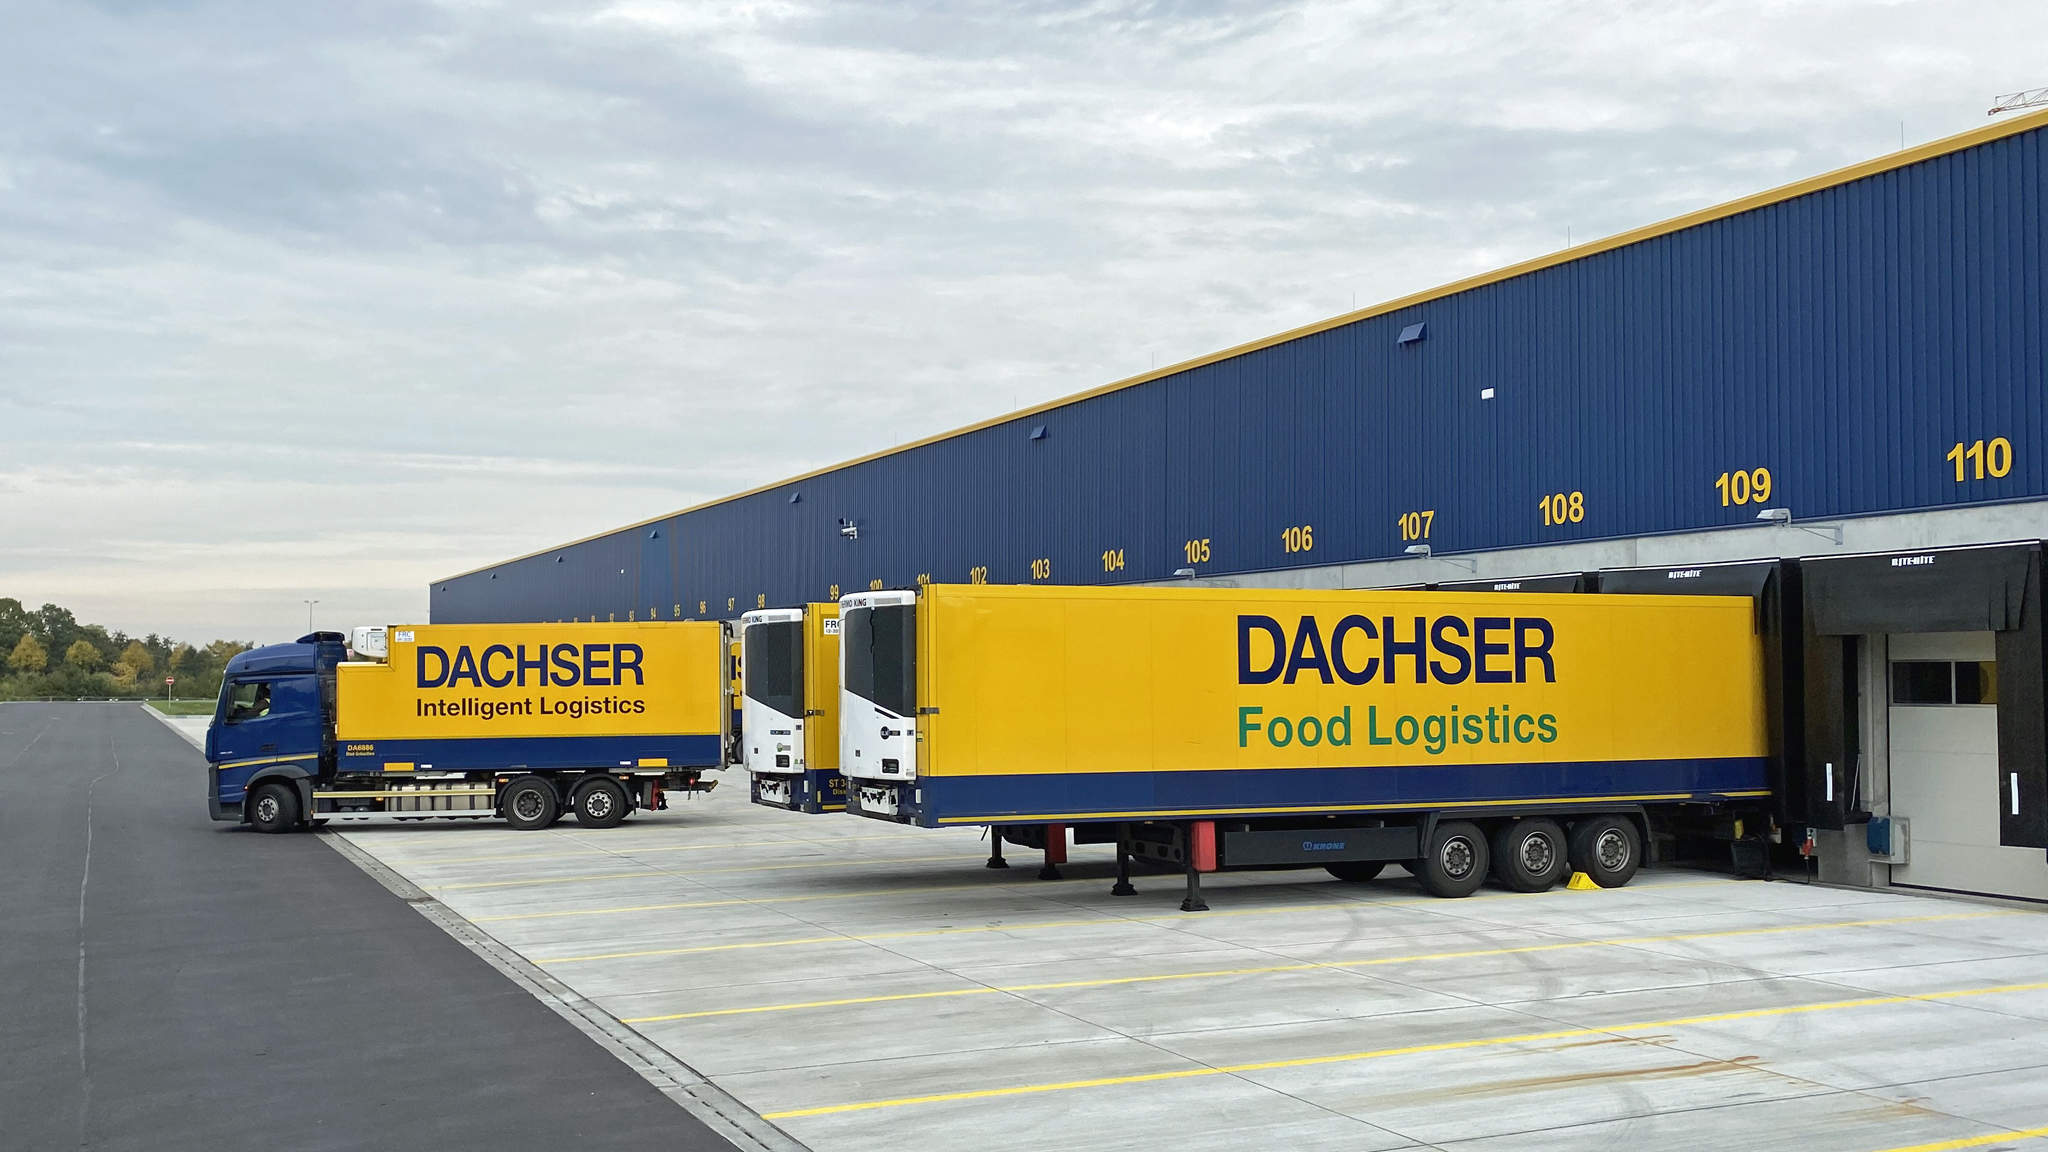 DACHSER has opened a new branch in Neumünster